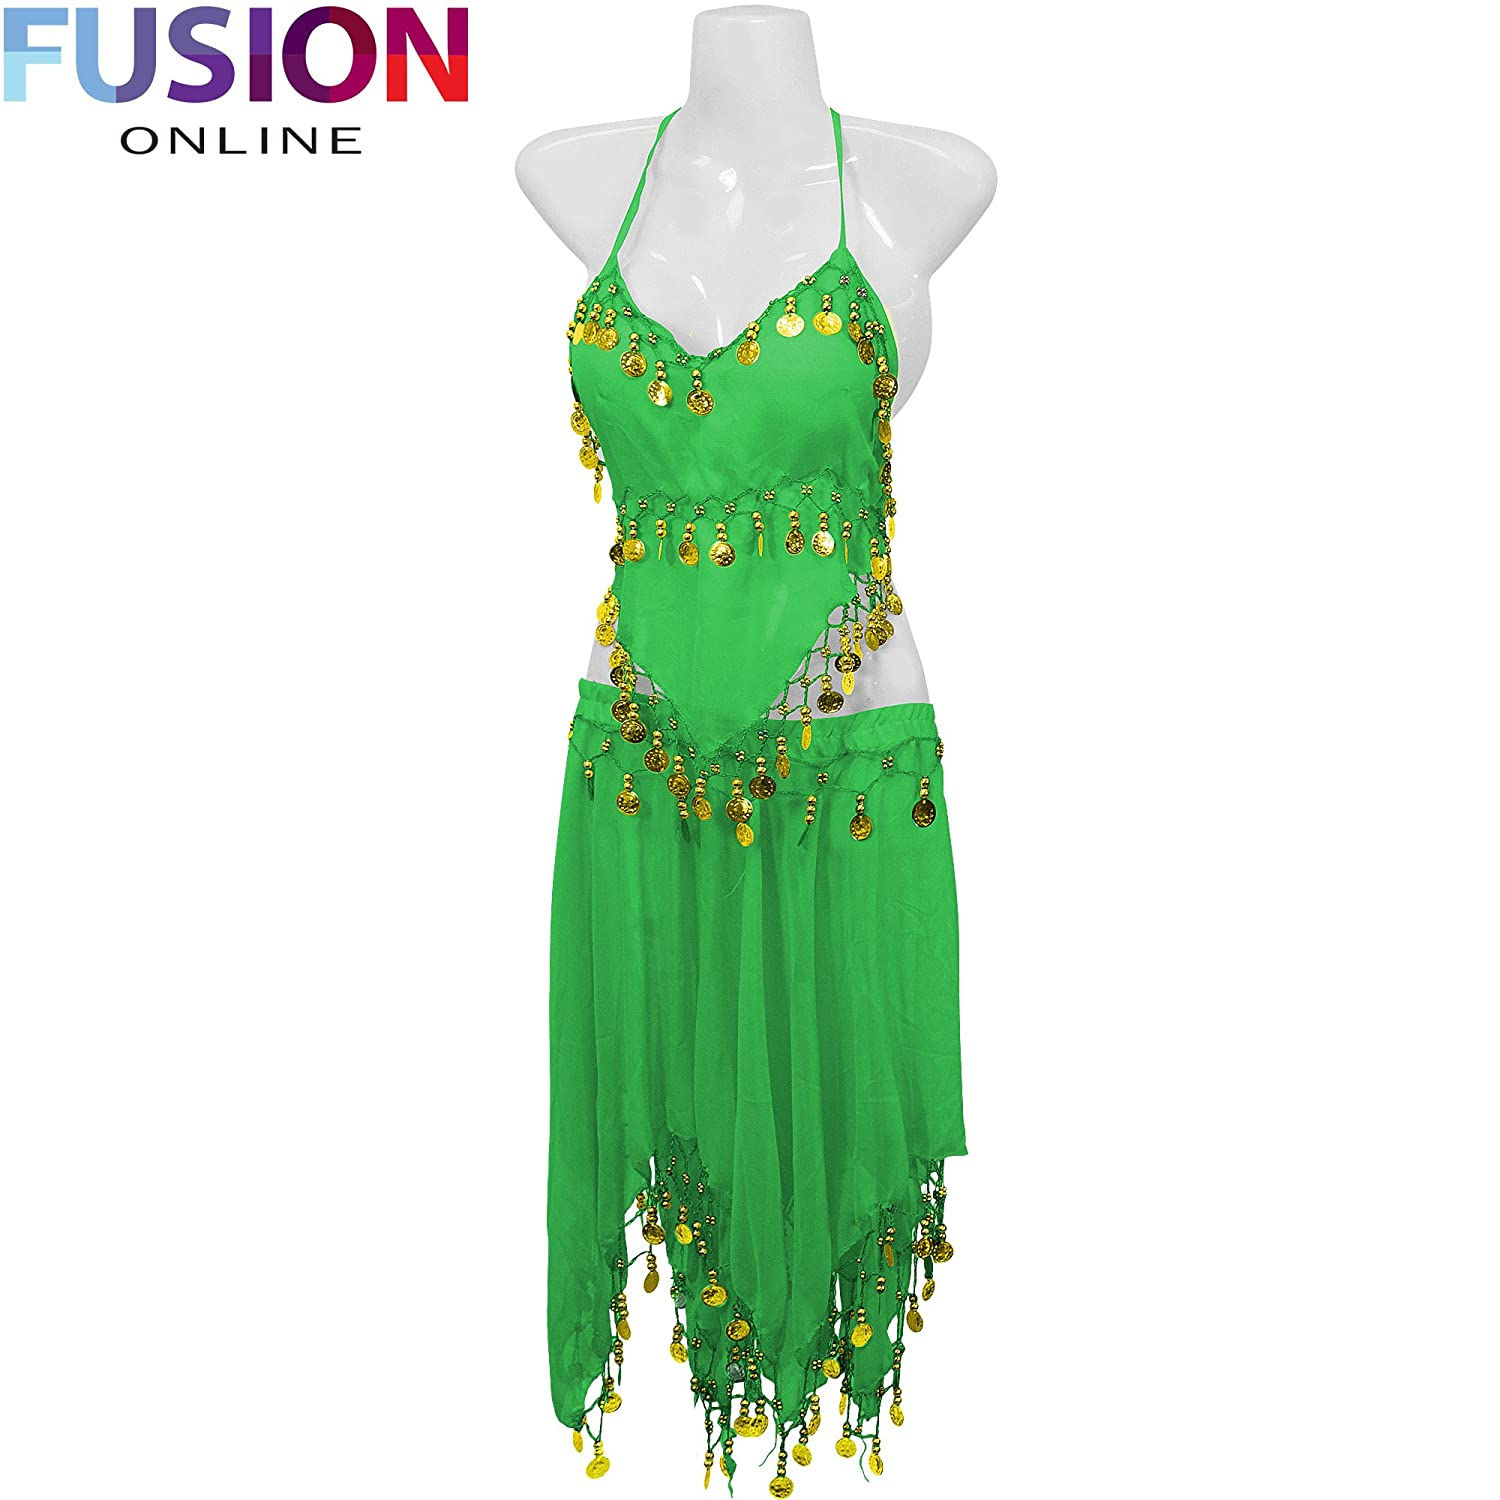 3 ROW BELLY DANCE COSTUME HIP WRAP SCARF SKIRT BELT DANCING PARTY OUTFIT FULL FUSION(TM)